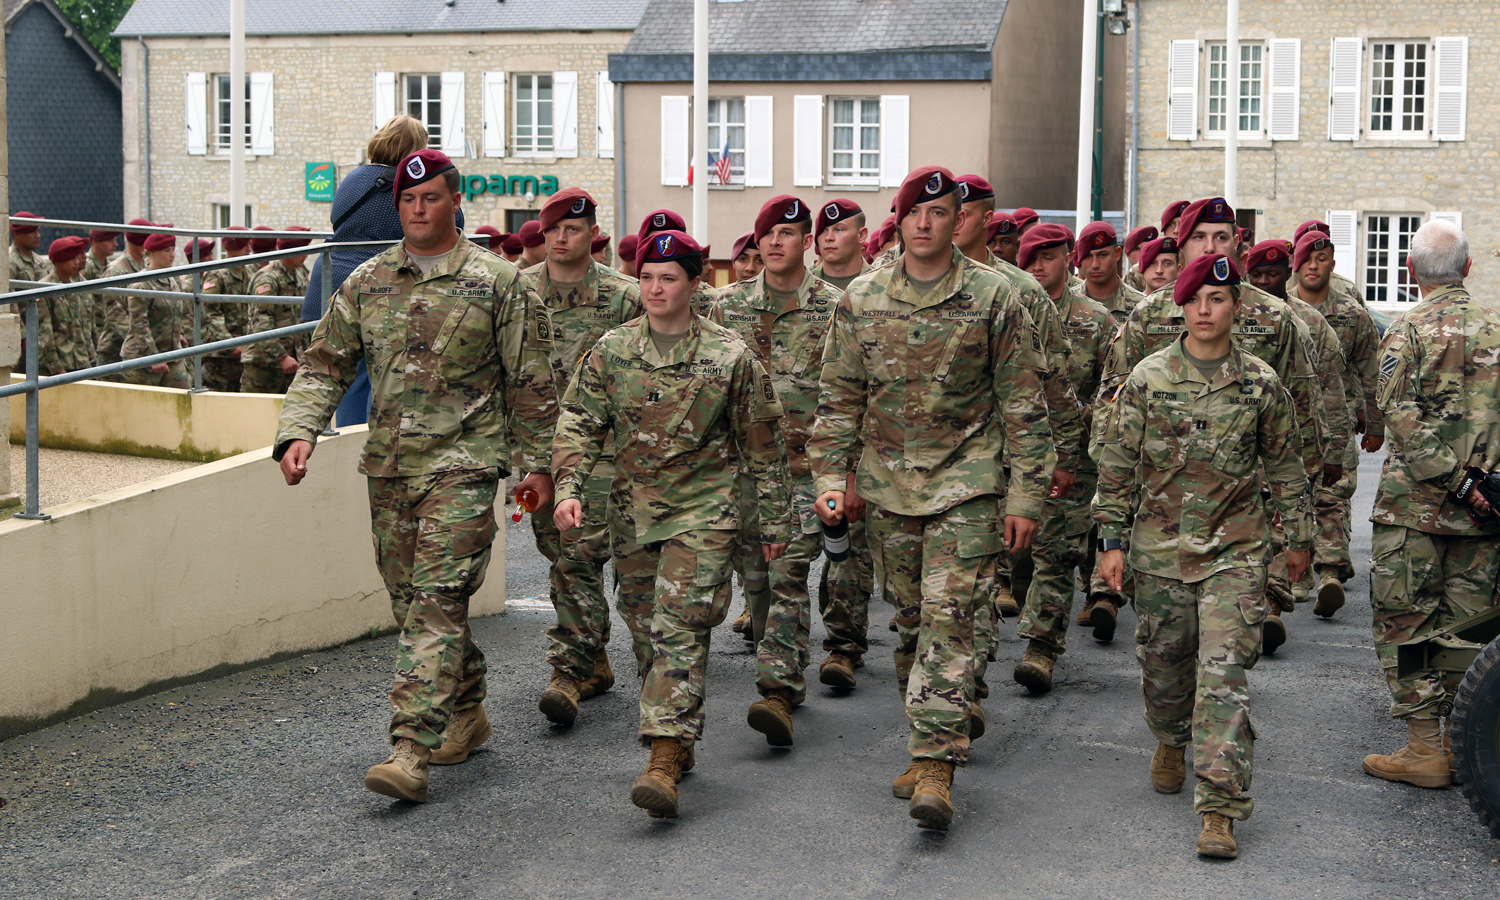 82nd Airborne Division paratroopers and Soldiers of other units, that fought during WWII, march to the Sainte Mere Eglise town hall on May 31, at Normandy, France. Local Families hosted the paratroopers for dinner to show their appreciation for the paratroopers and servicemembers that fought back the Nazis during WWII.